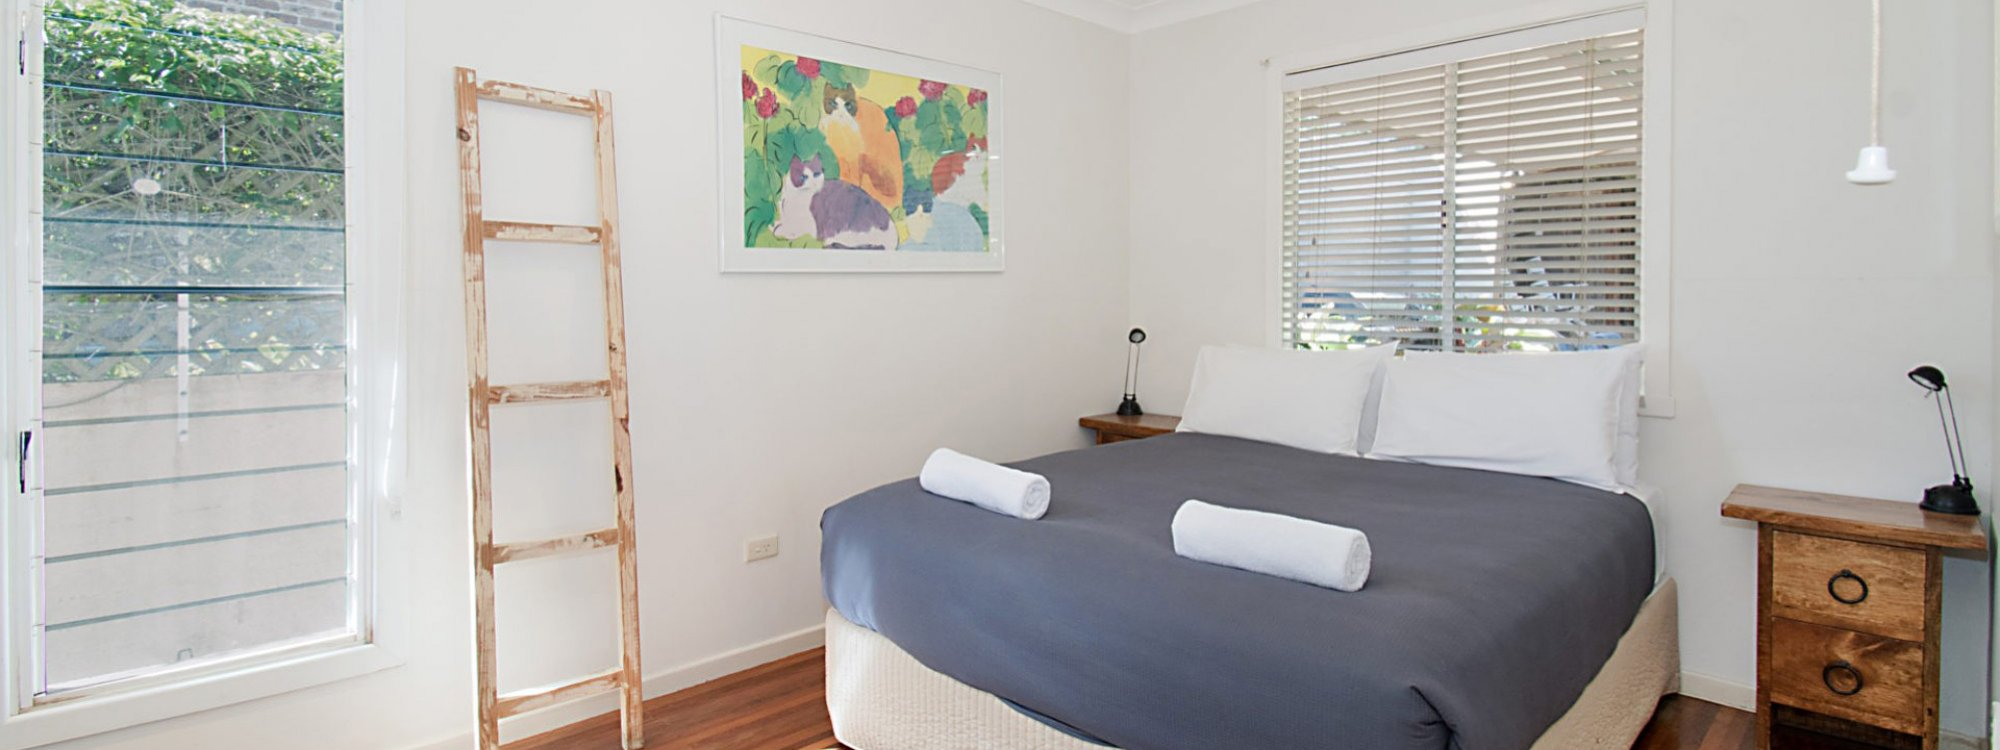 Byron View - Clarkes Beach - Bedroom 3